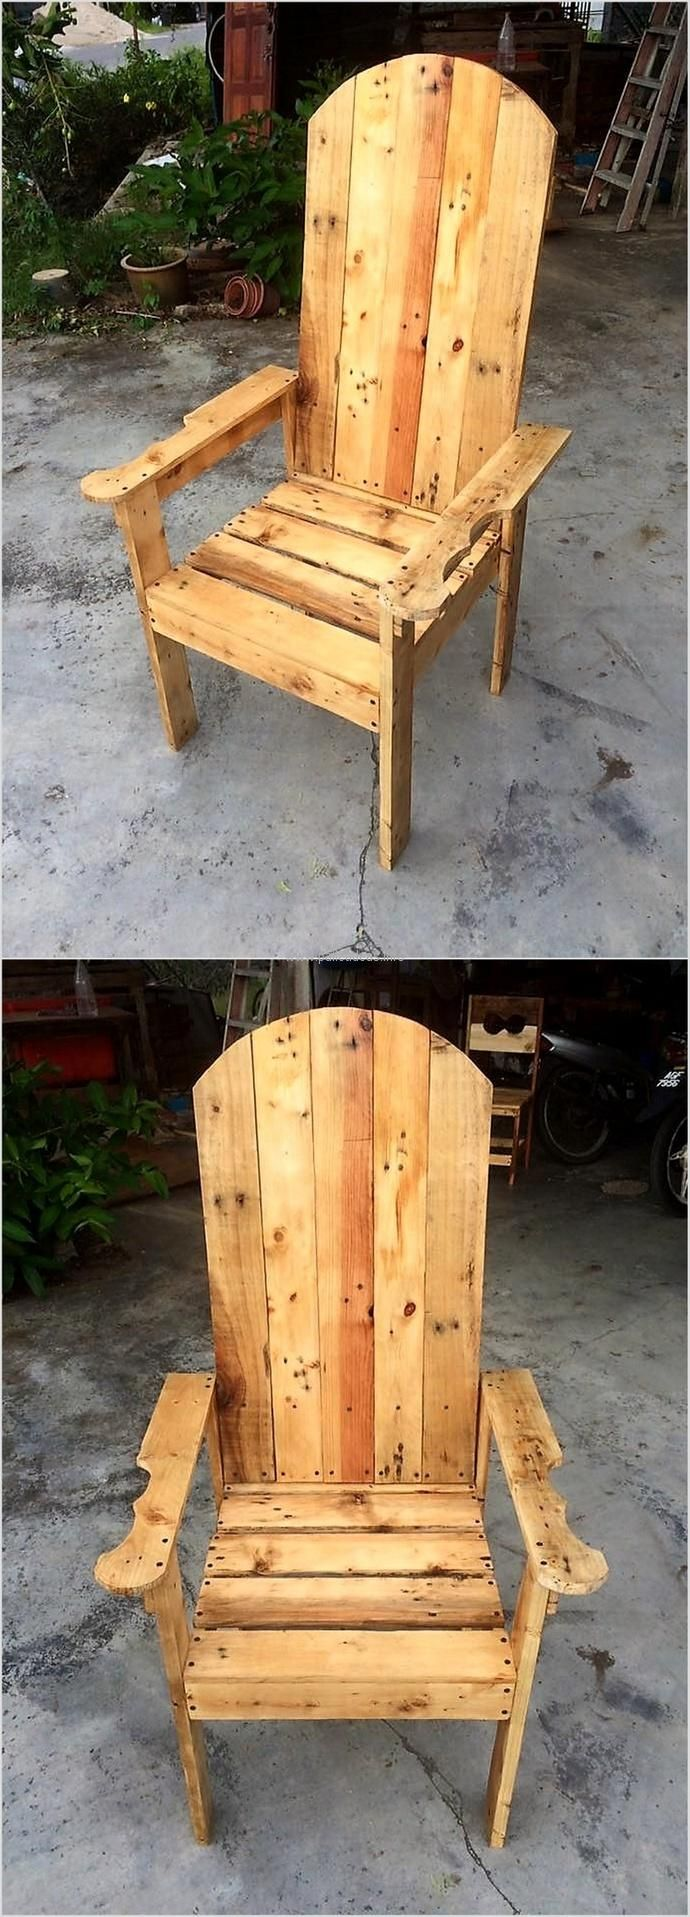 49 best images about pallet chairs on pinterest recycling